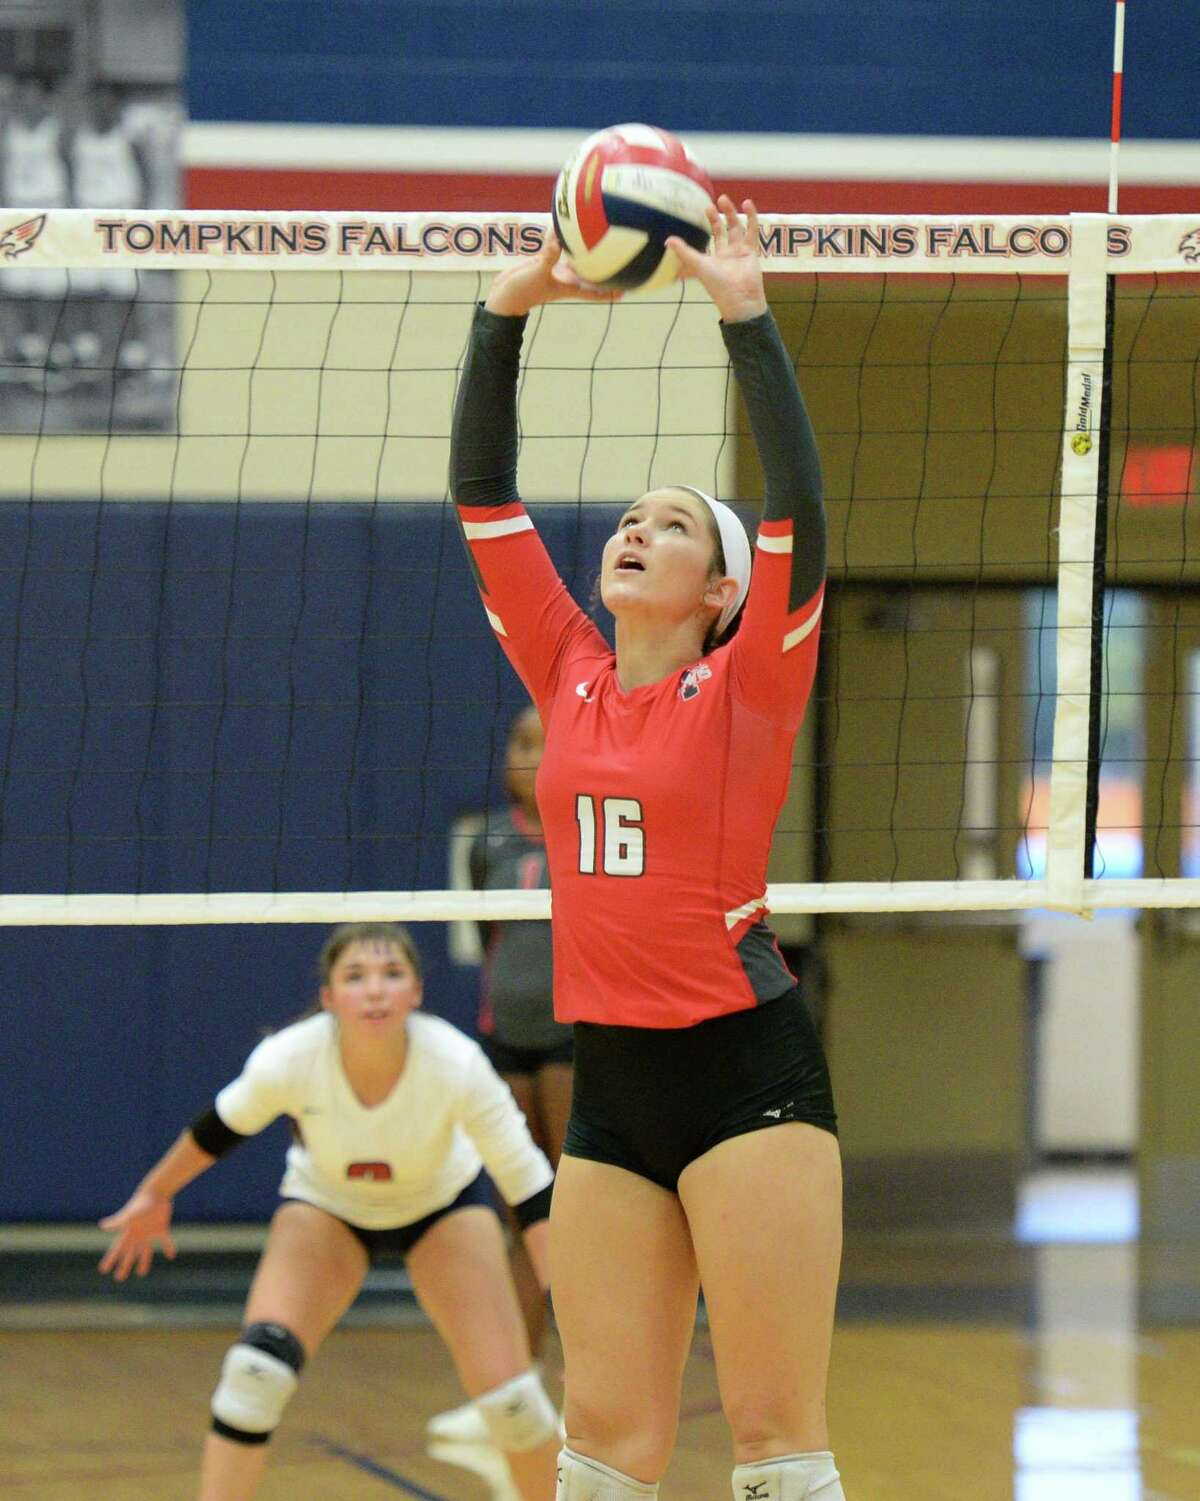 Anna Kate Glath (16) of Travis sets a ball during the second set of a volleyball match between the Tompkins Falcons and the Travis Tigers on Tuesday, August 6, 2019 at the Travis HS, Katy, TX.